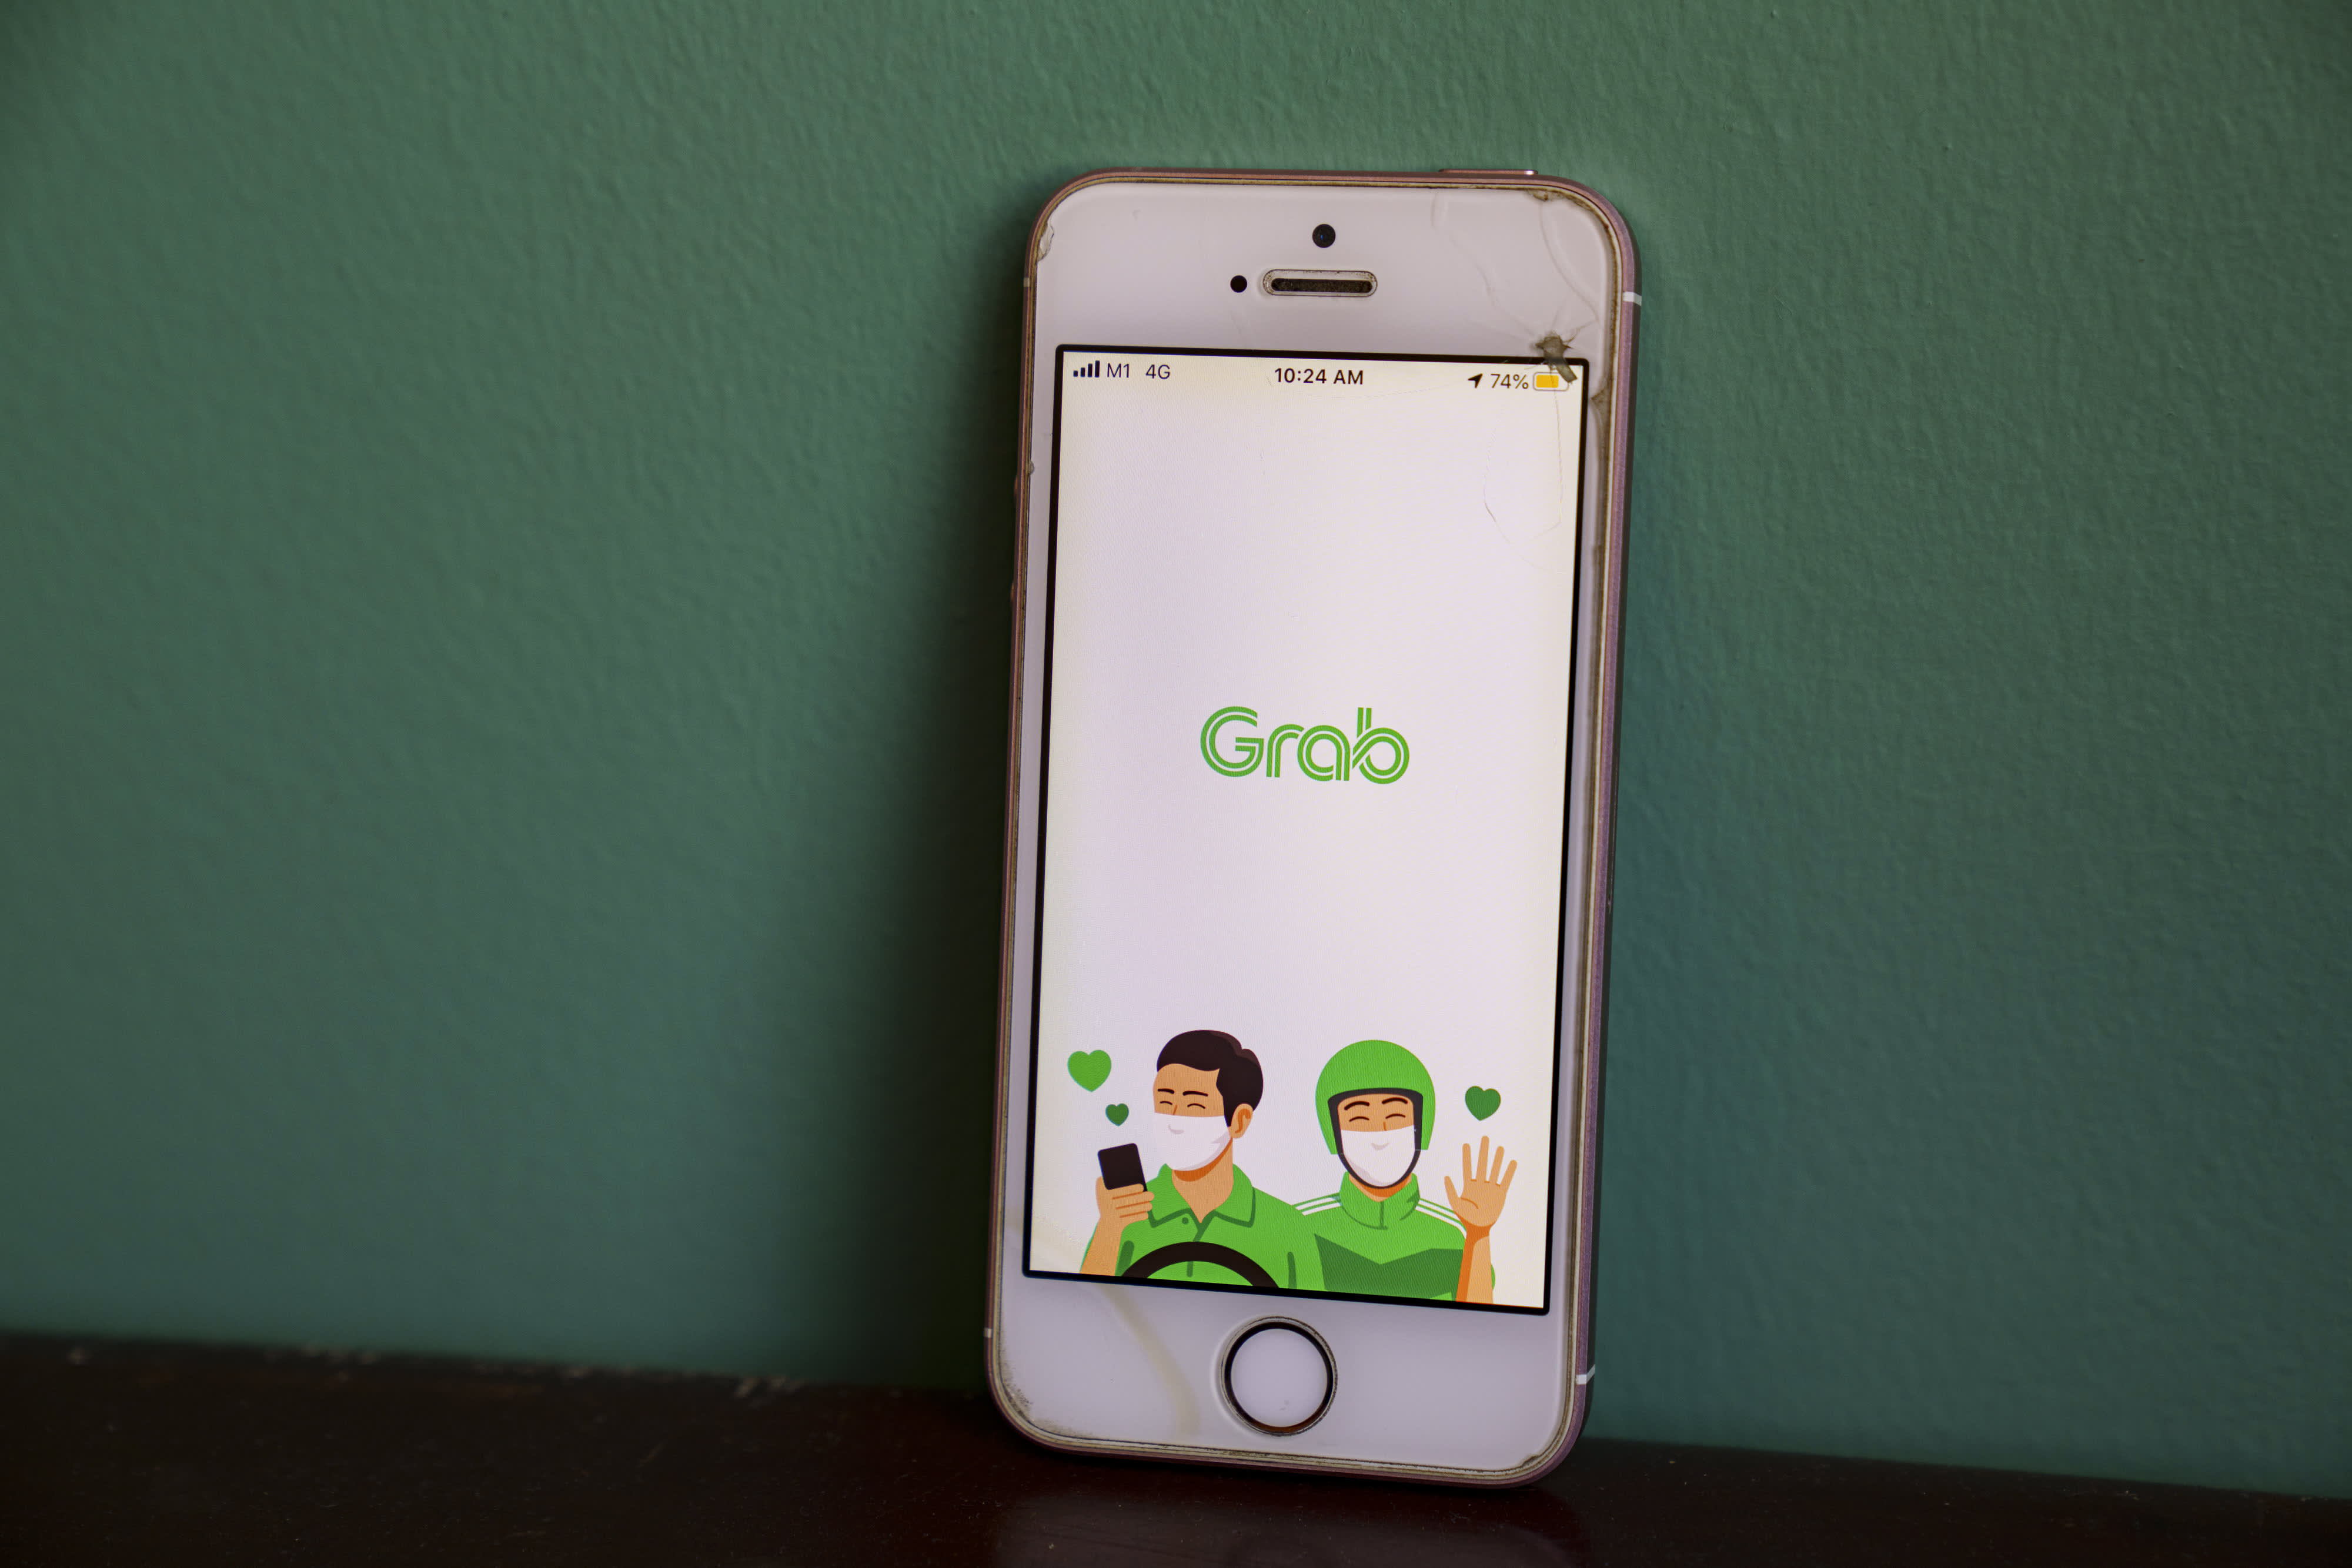 Grab's not yet profitable, but investors may give it 'leeway' to invest in new growth areas, analysts say - CNBC